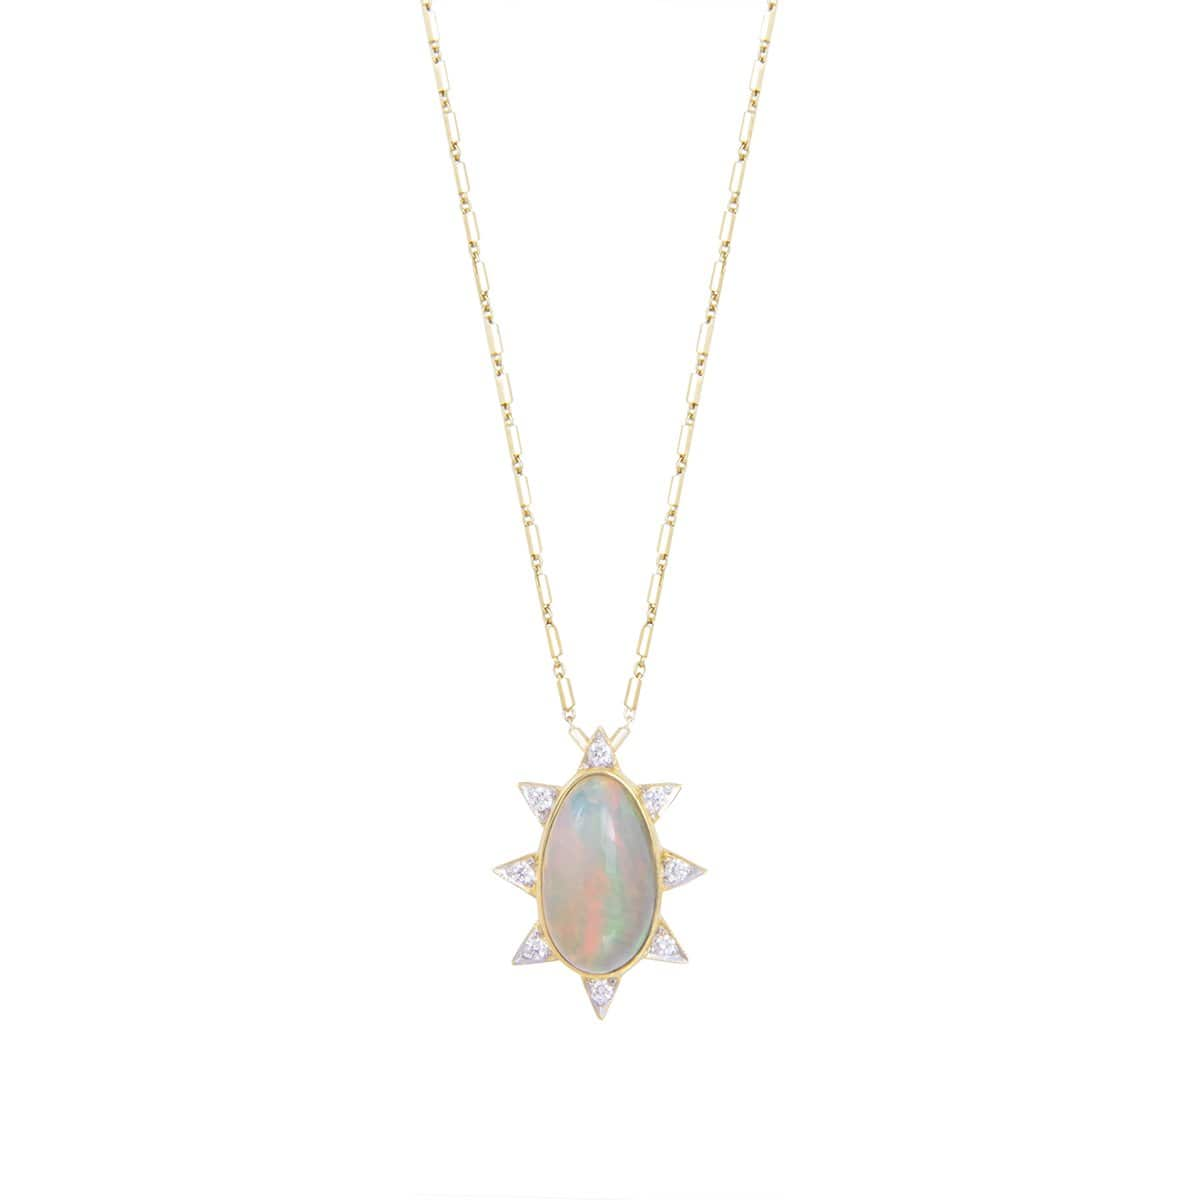 Oval Opal Diamond Starburst Pendant Necklace - Curated Los Angeles